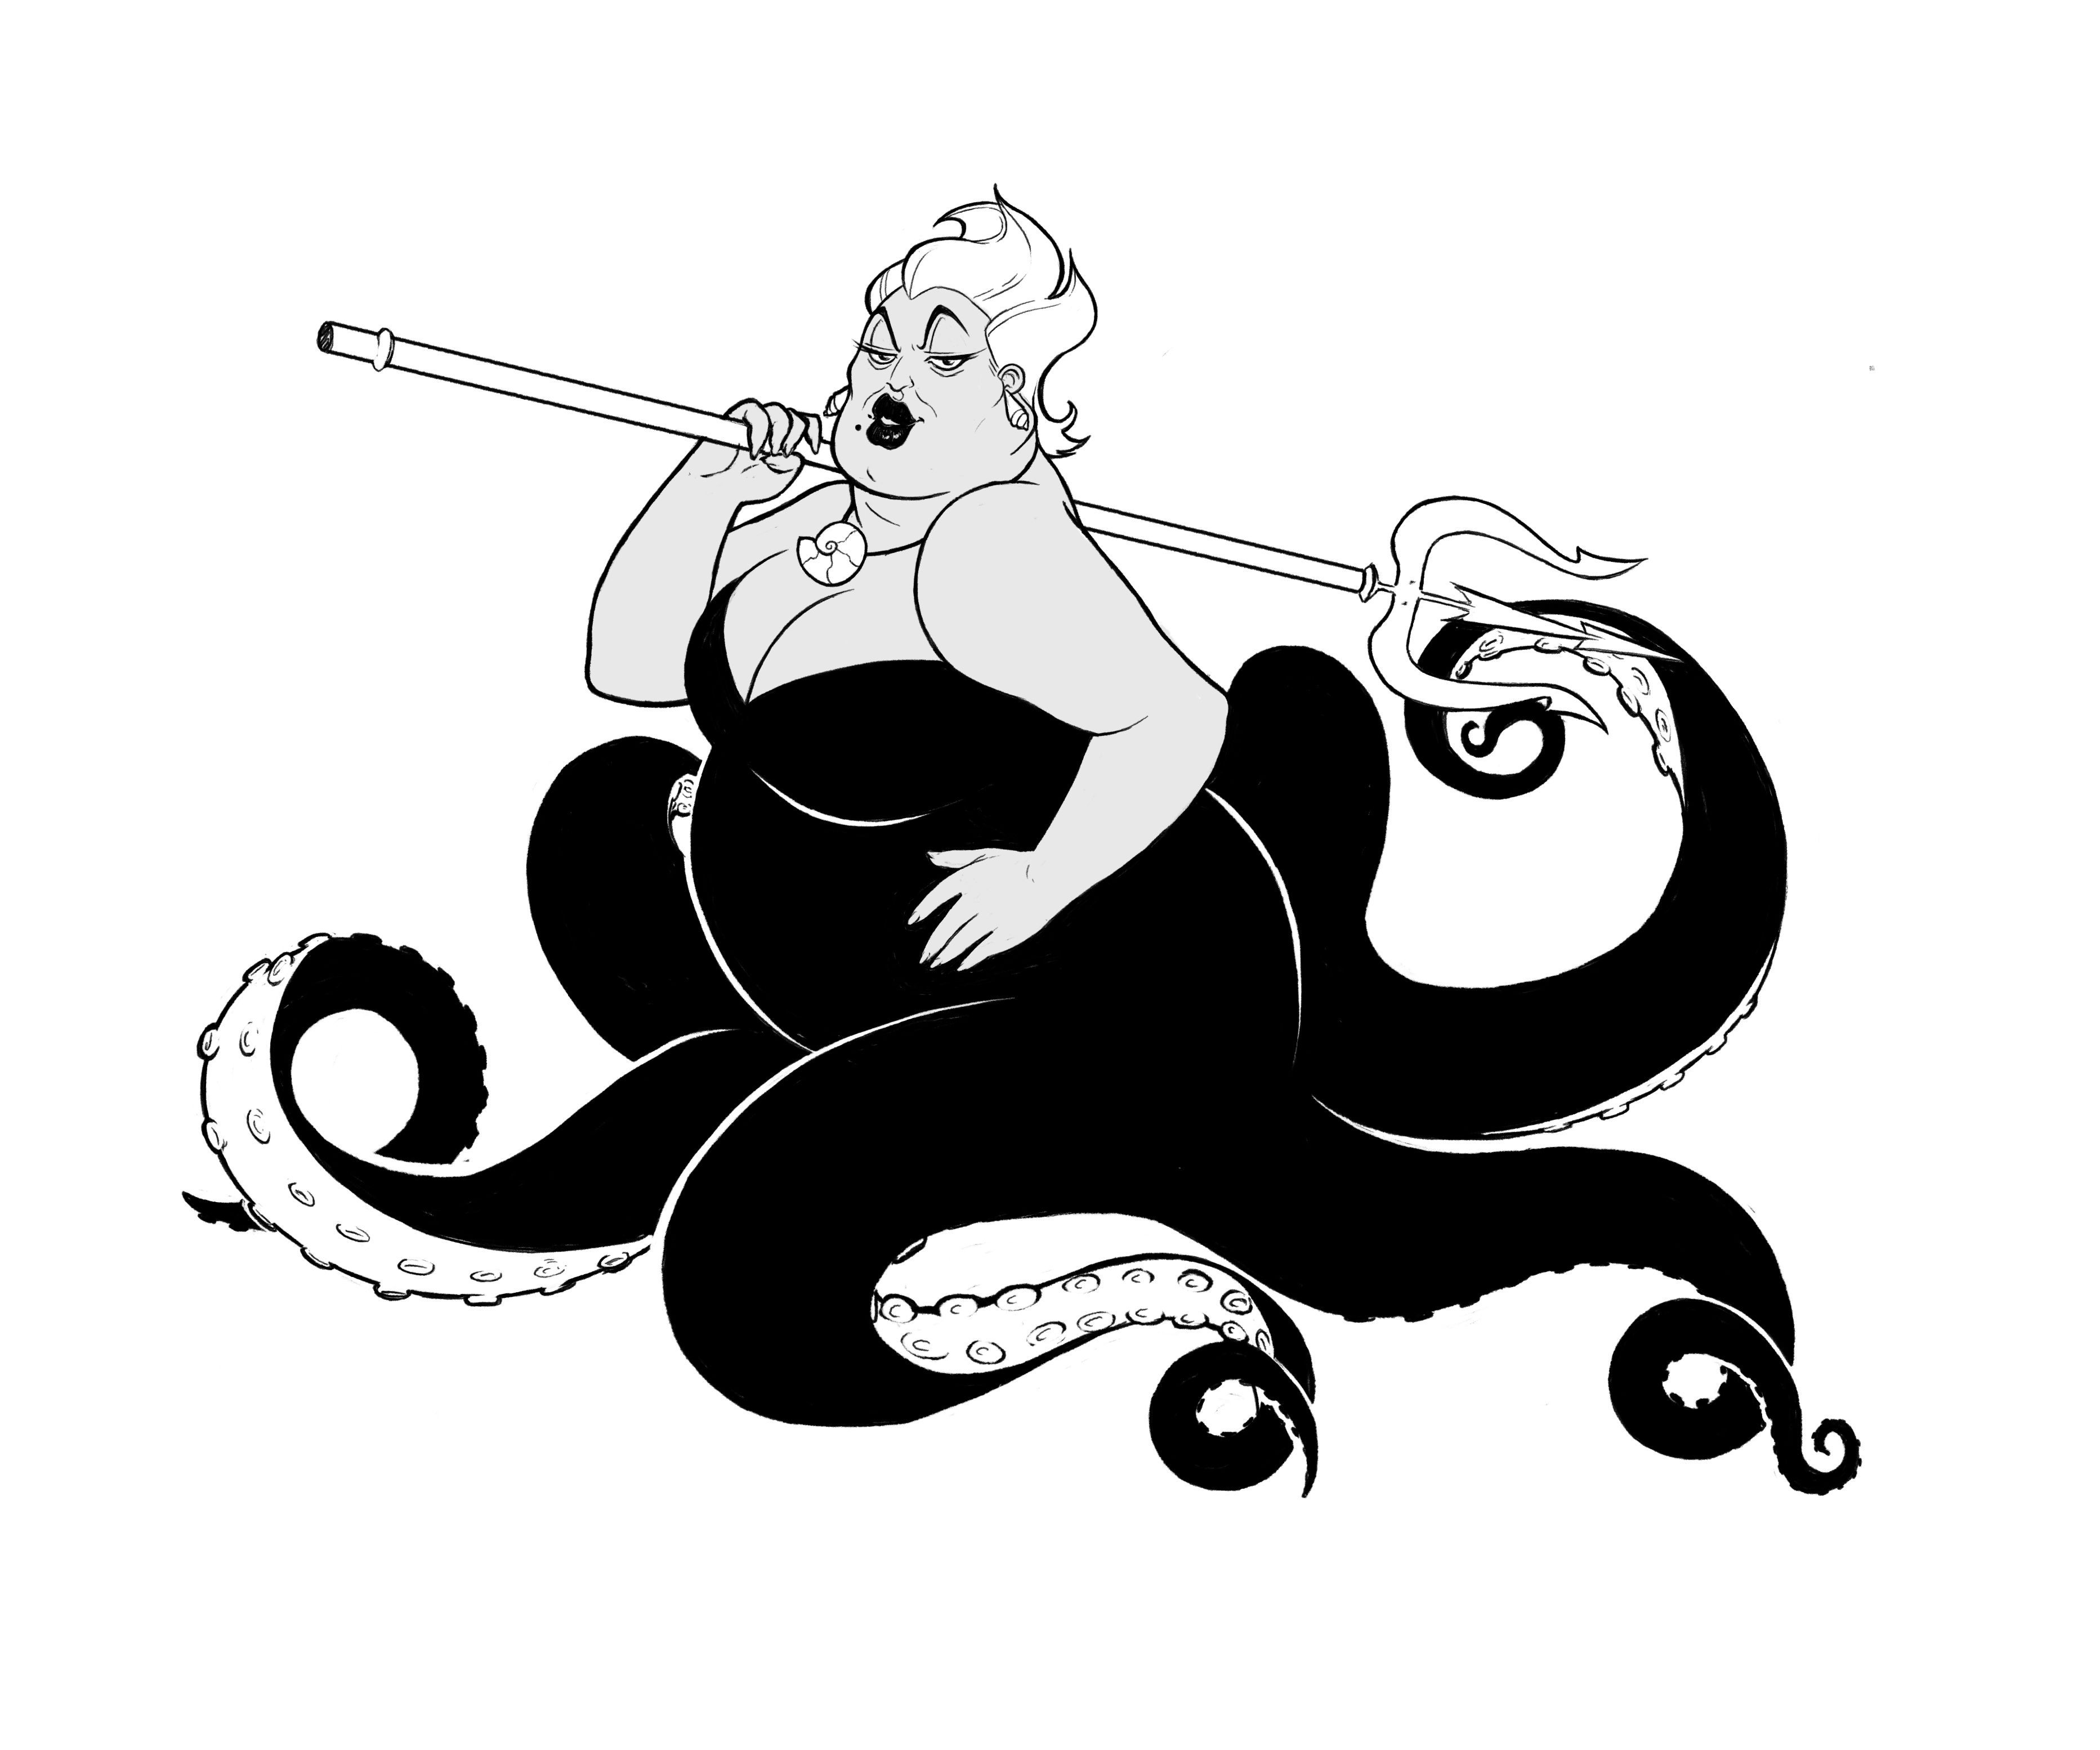 picture black and white download Disney villain from the. Ursula drawing black and white